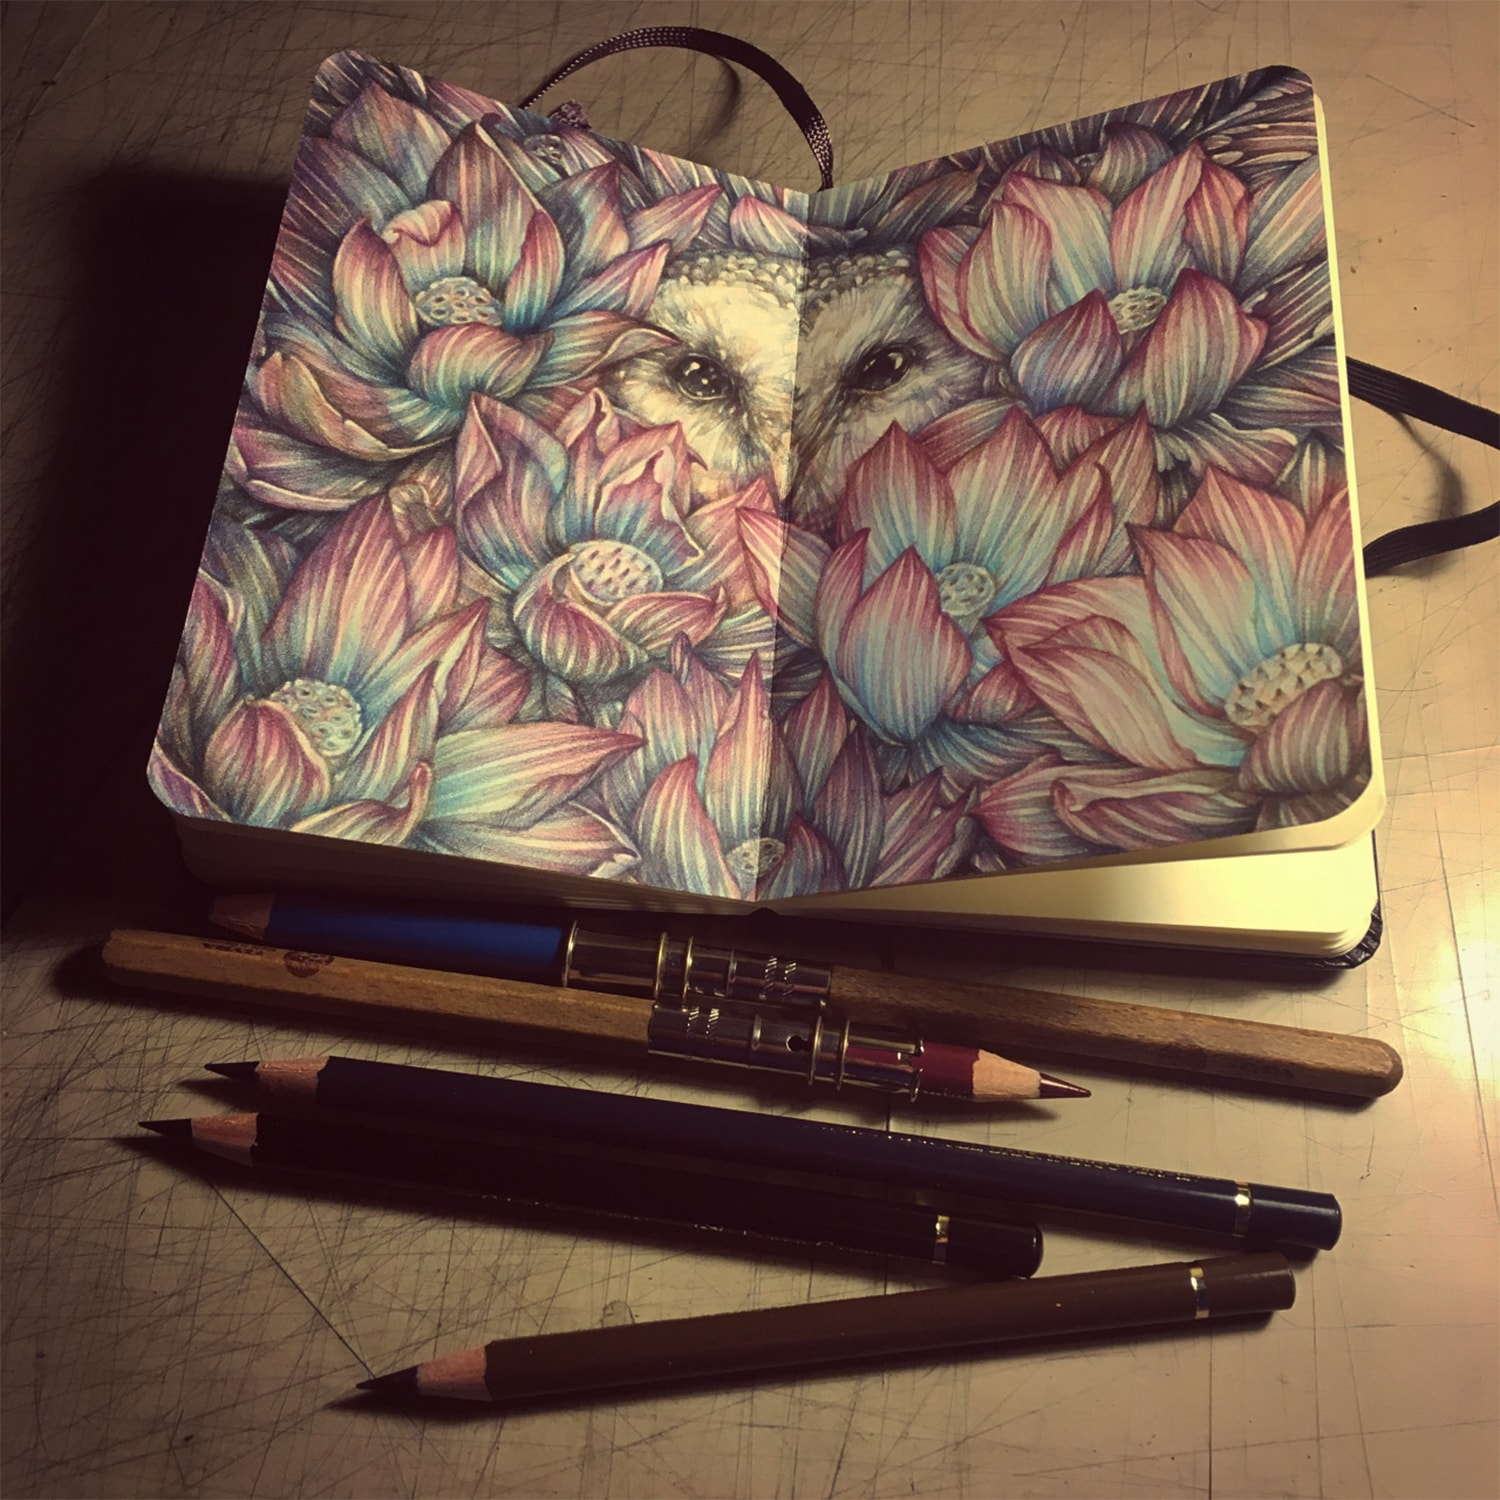 flowers and an owl drawing on moleskine